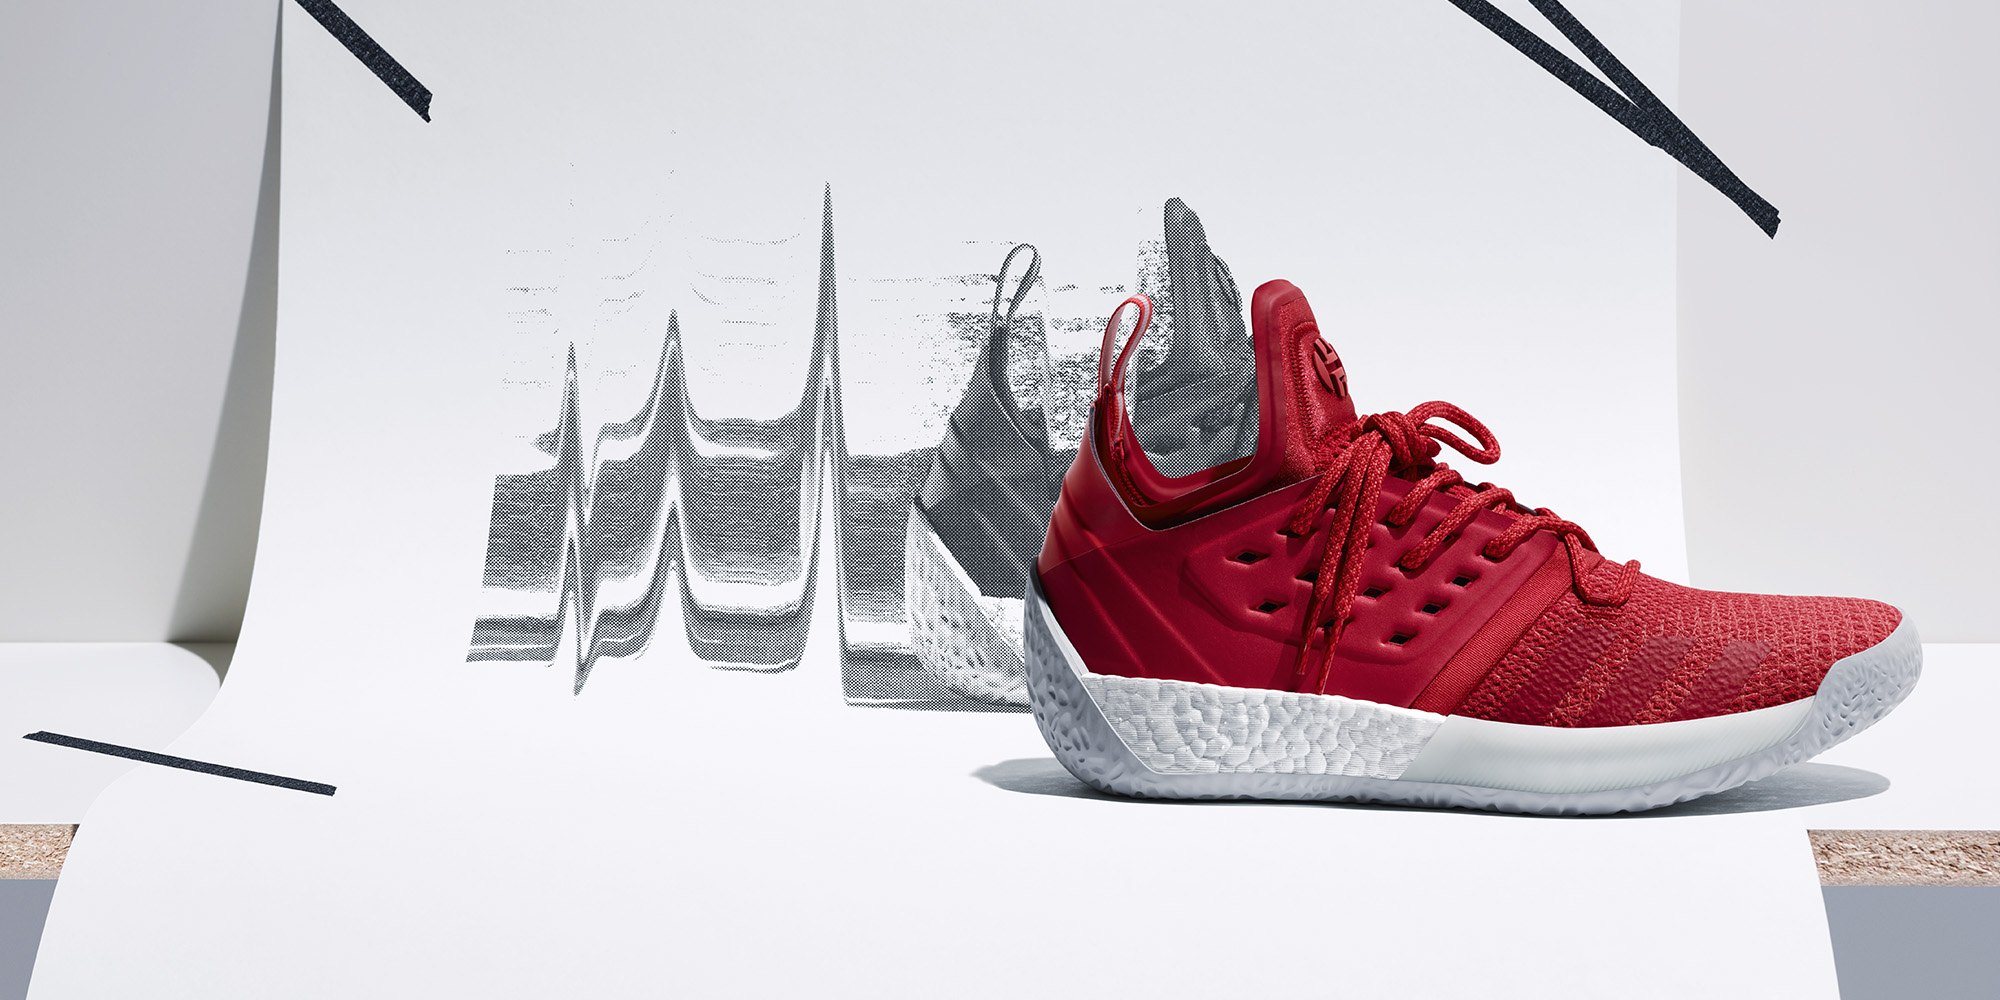 4b3f486b1634 adidas Unveils Next Three Colorways of the Harden Vol 2 - WearTesters